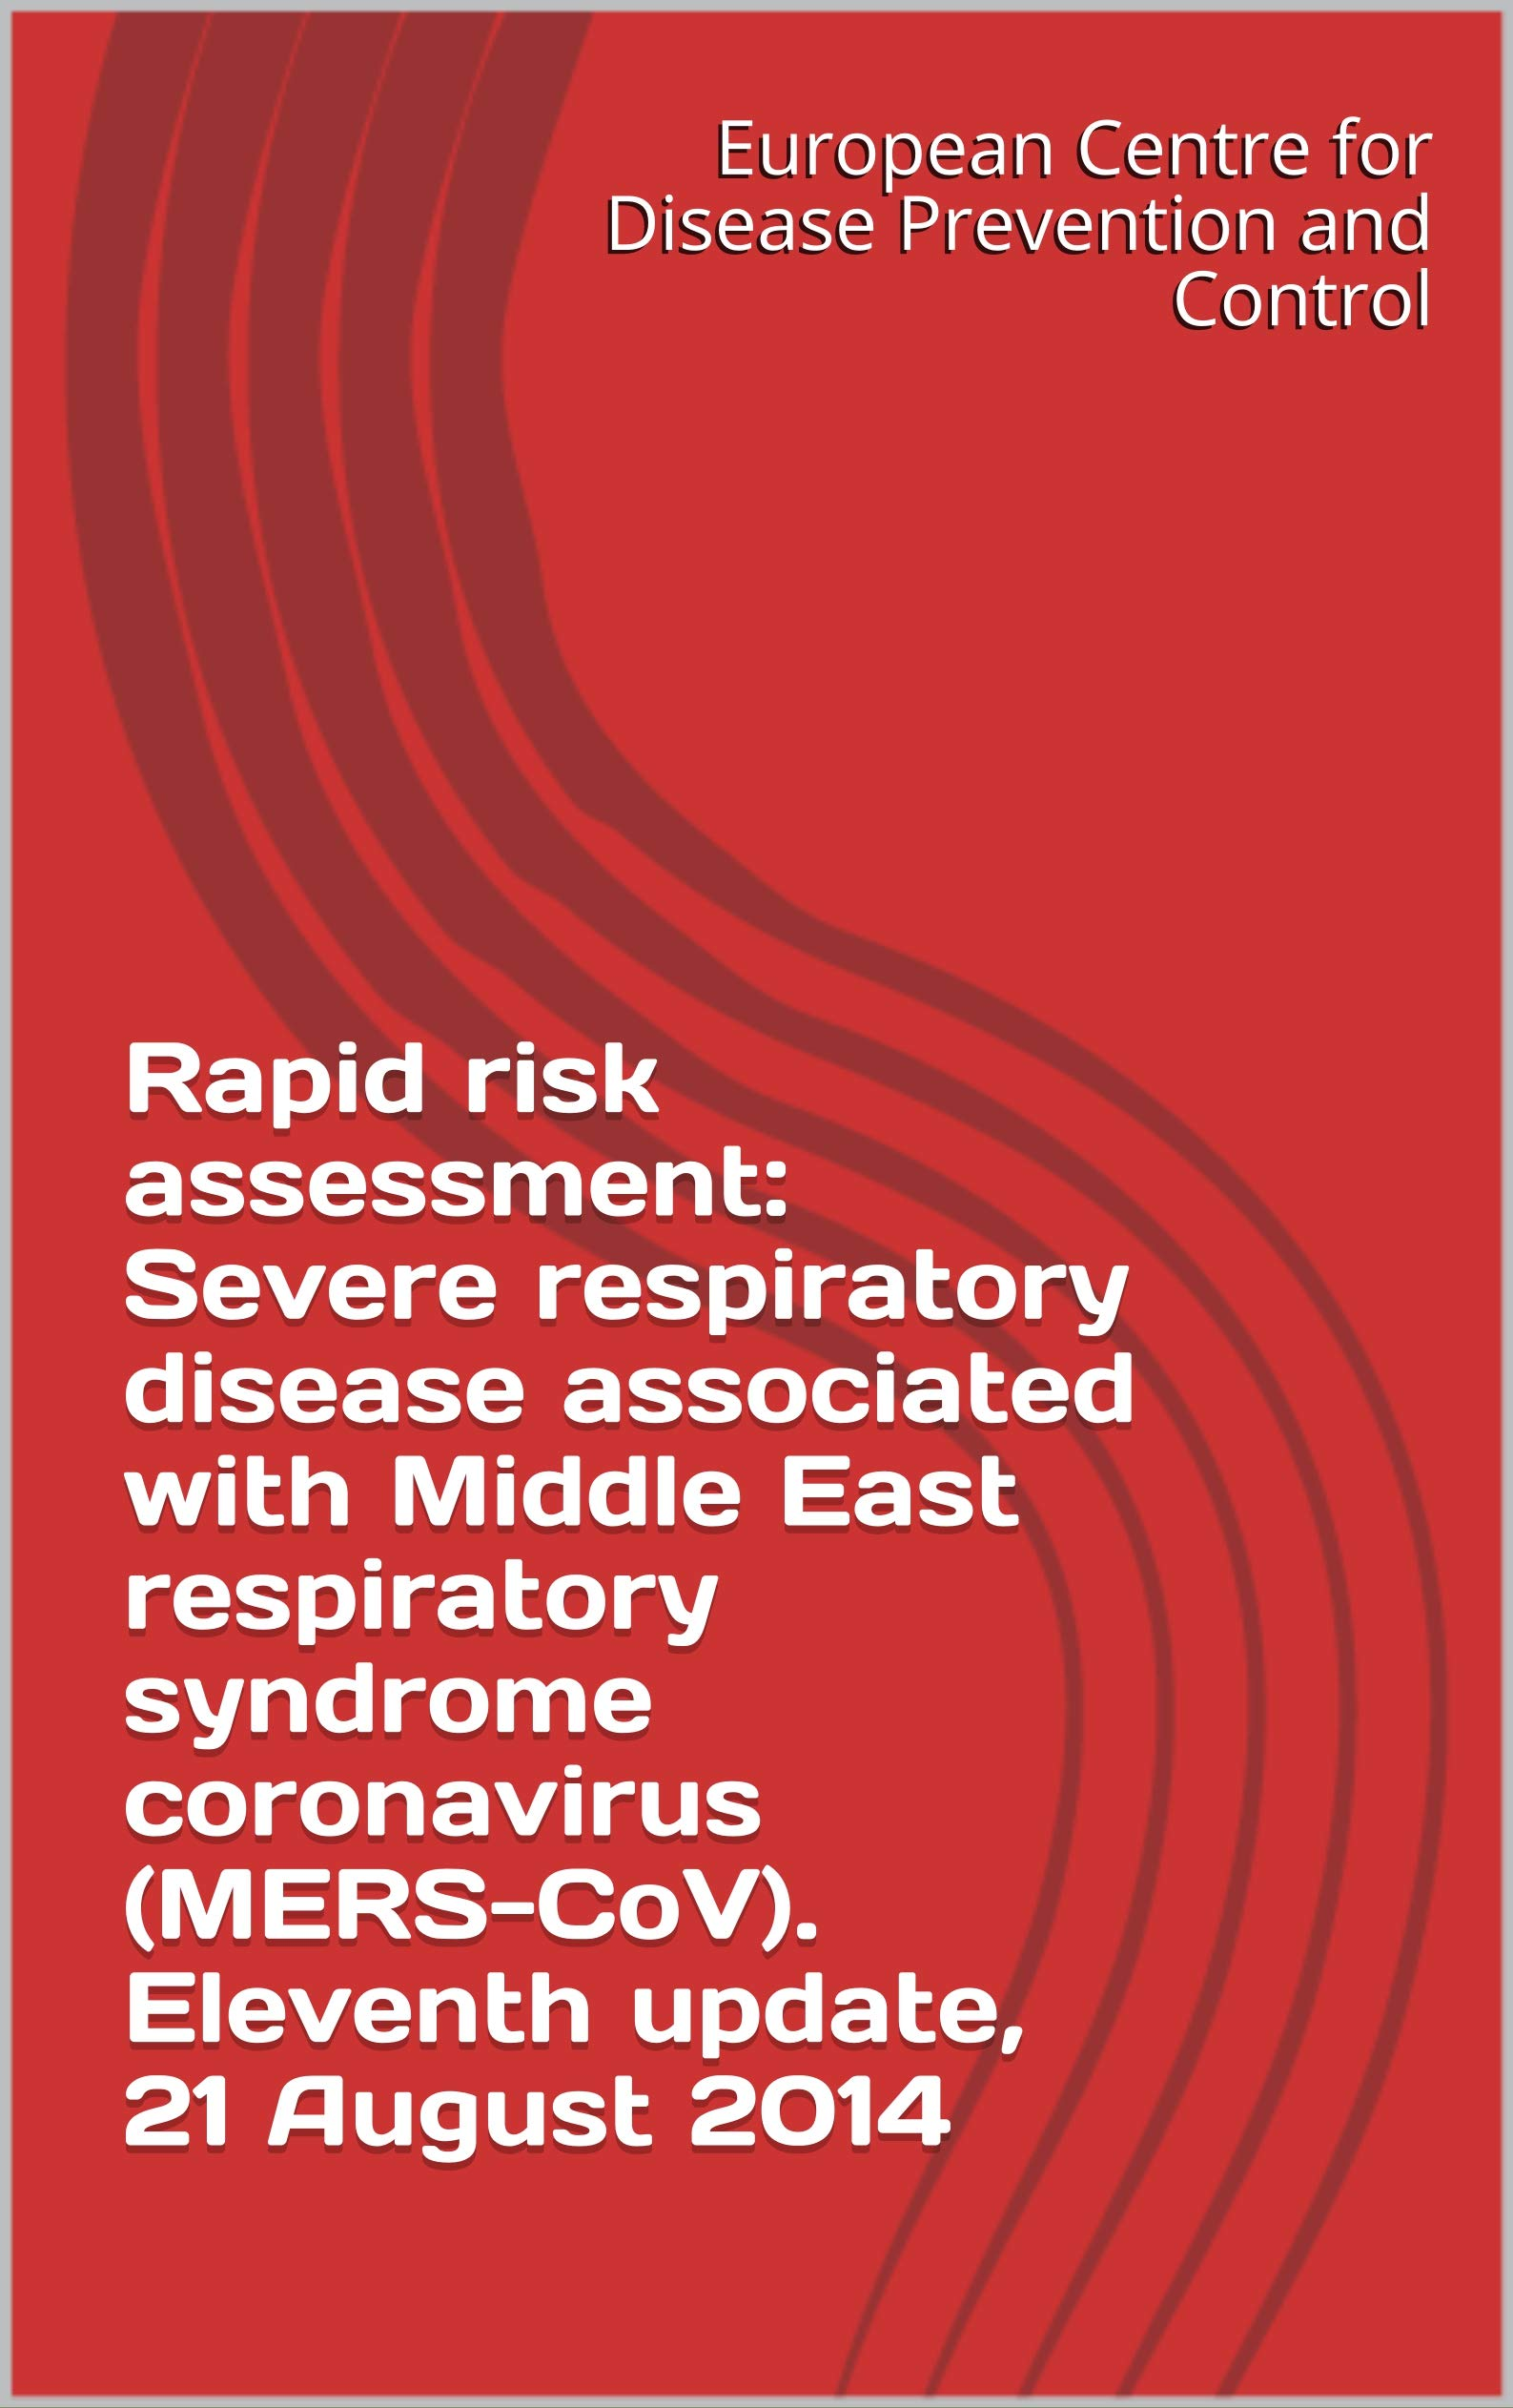 Rapid risk assessment: Severe respiratory disease associated with Middle East respiratory syndrome coronavirus (MERS-CoV). Eleventh update, 21 August 2014